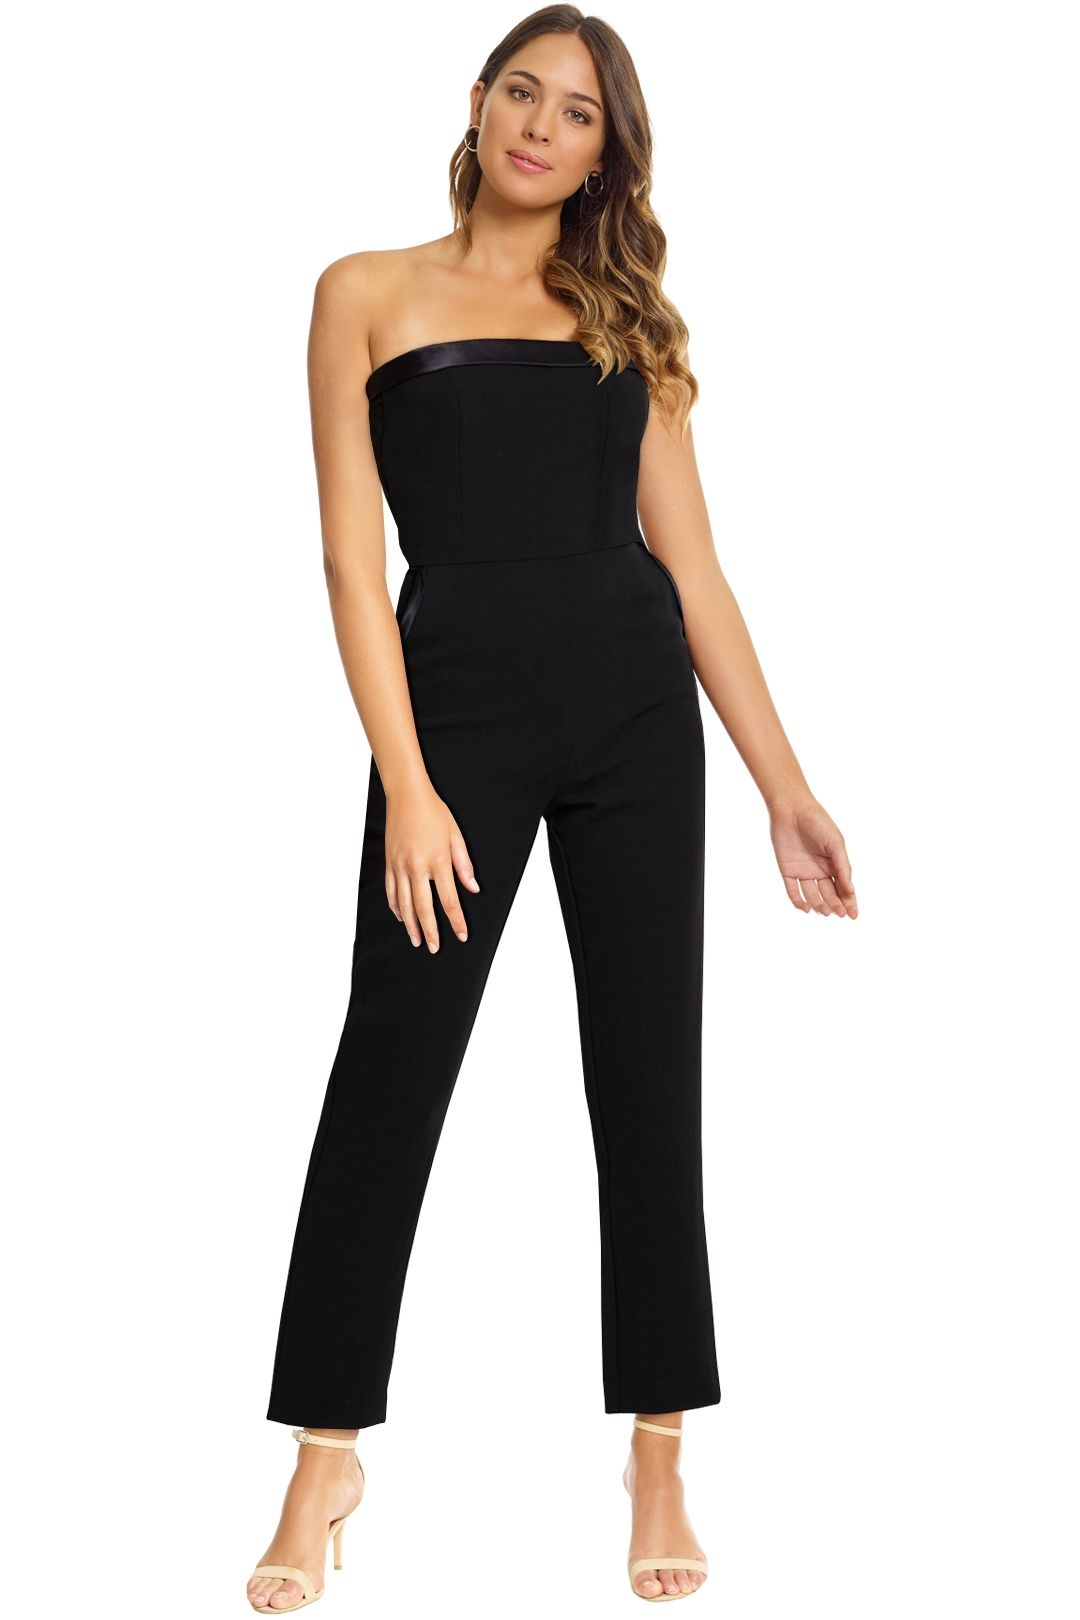 Bec and Bridge - Like A Boss Jumpsuit - Black - Front